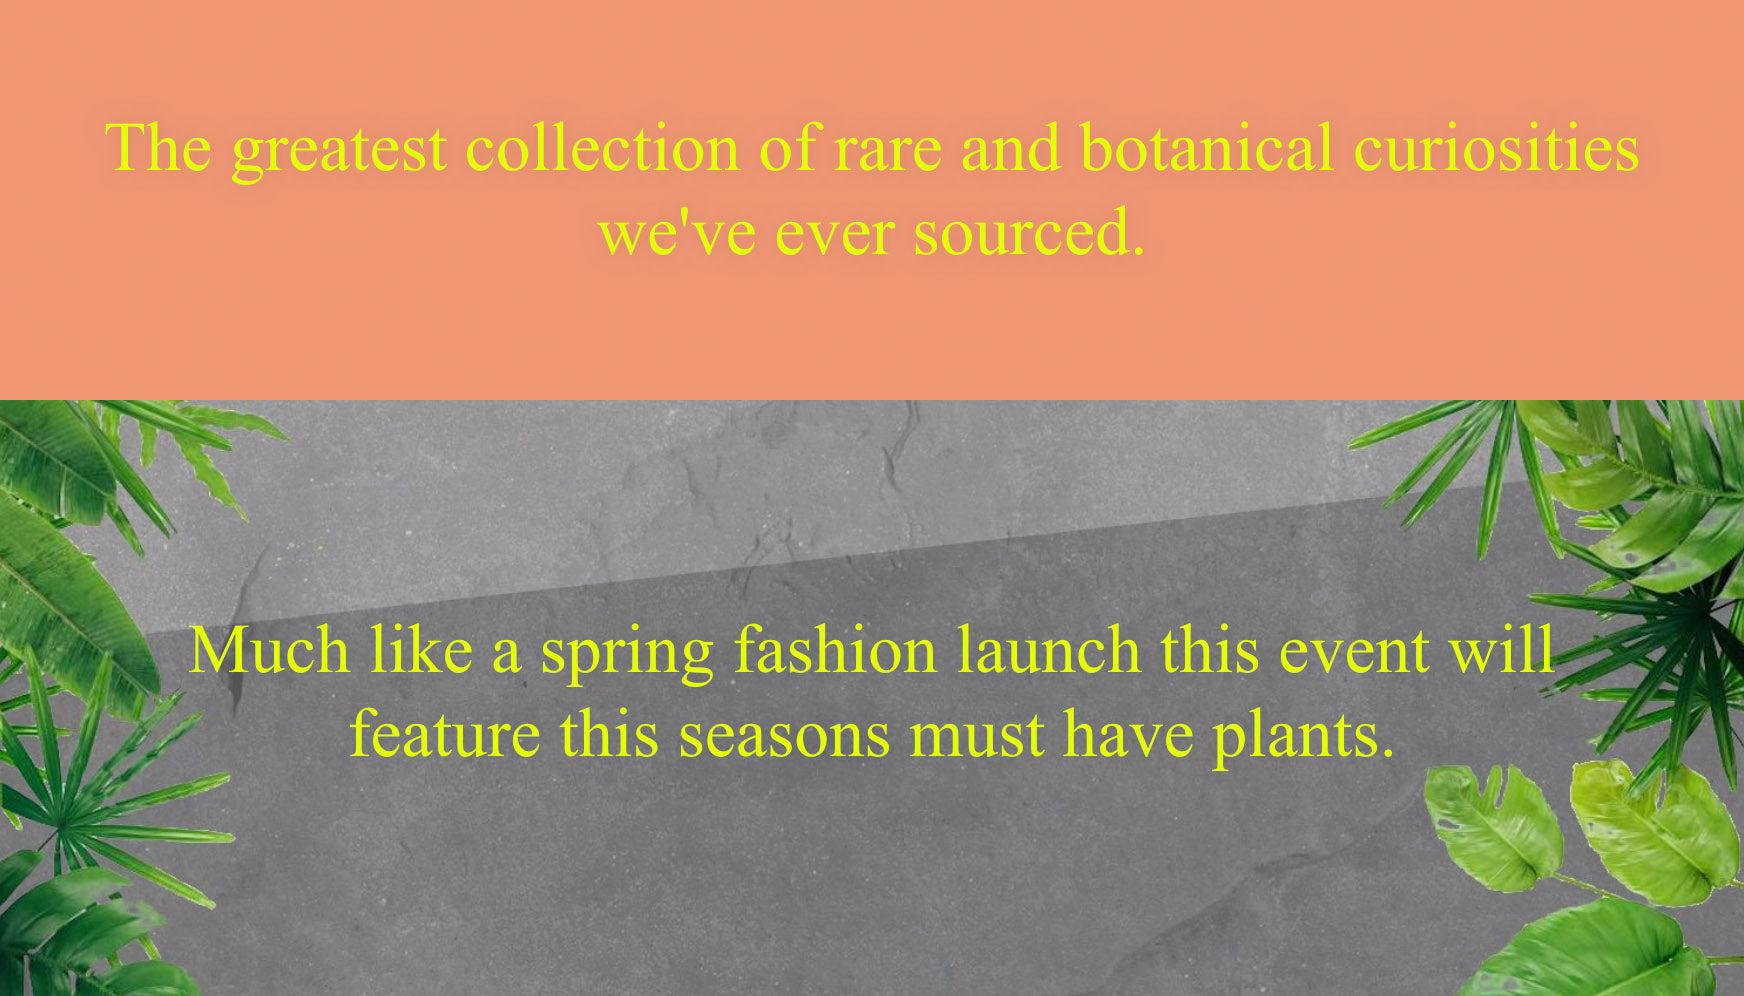 The greatest collection of rare and botanical curiosities we've ever sourced. Much like a spring fashion launch this event will feature this seasons must have plants.